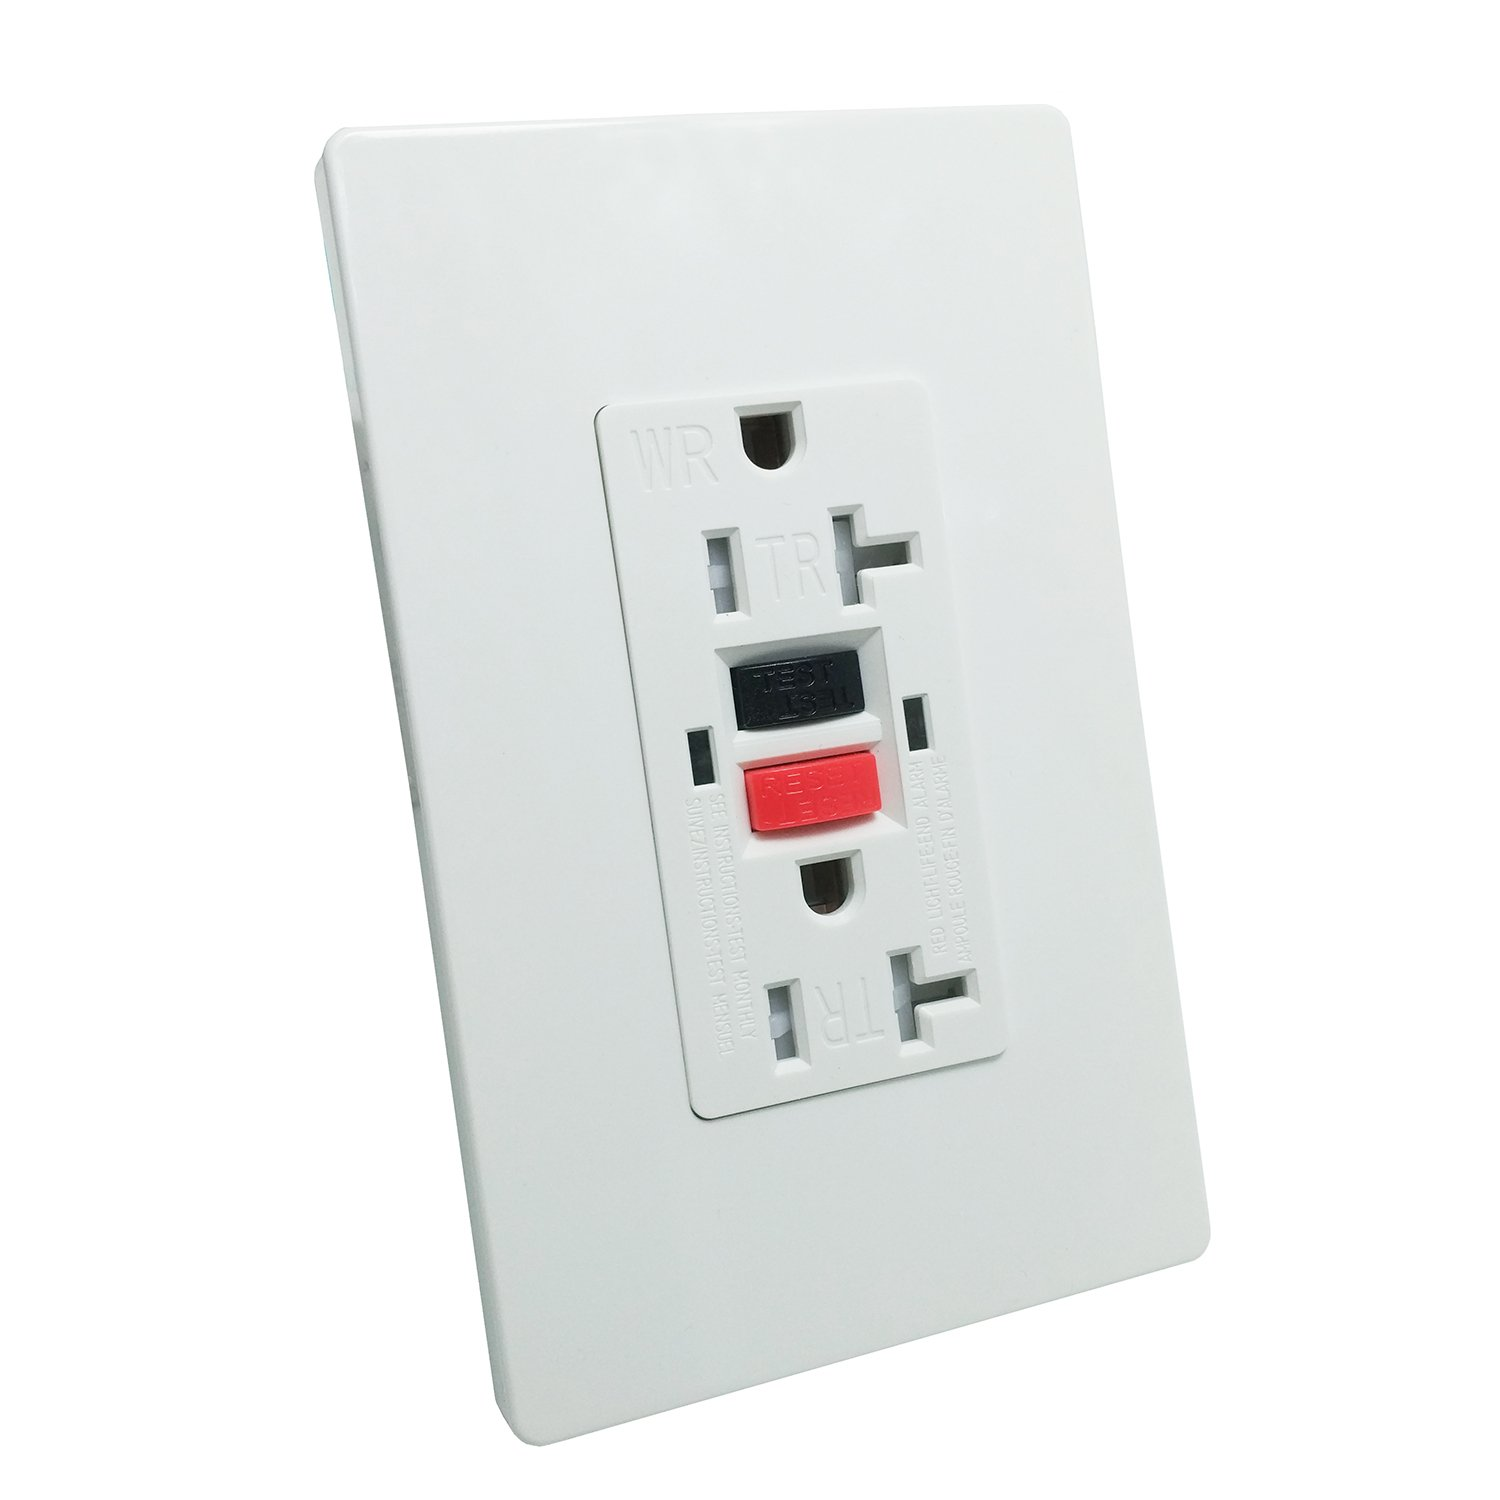 GFCI 20A TR Wall Outlet - LASOCKETS 20A 125V TR & Weather Resistant & Automatically Tests Standard Wall Outlet,Commercial Grade, White Wall Socket (Color Button) with 2 free Wall Plates, UL Listed